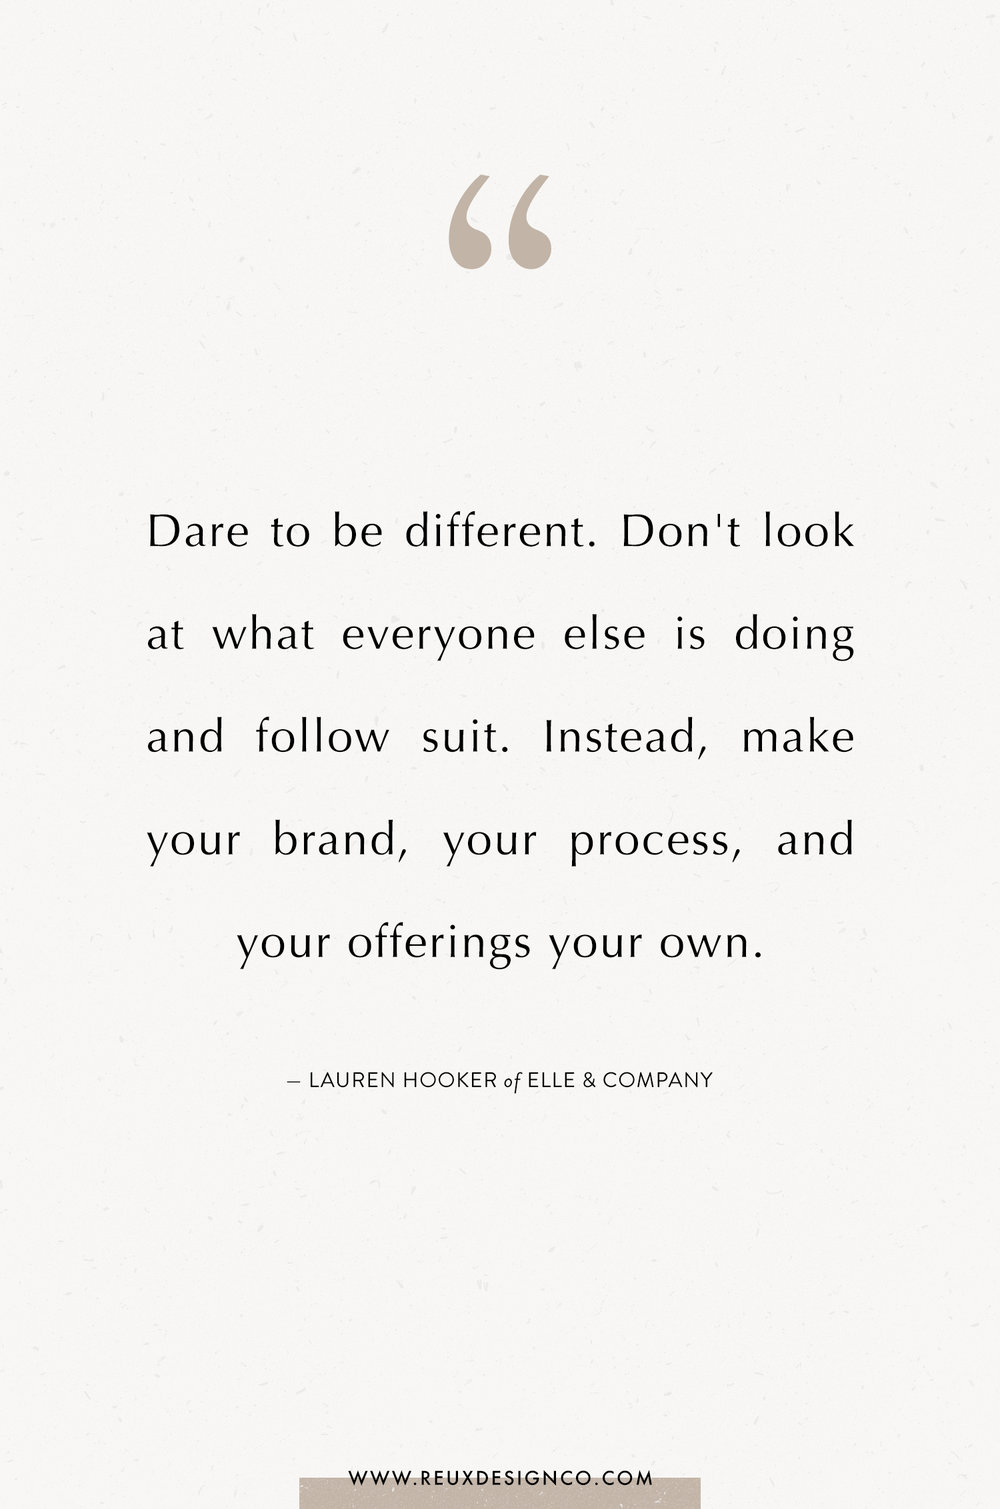 Branding + Business Tips from Lauren Hooker from Elle & Company Designs on the Reux Design Co. blog | positive affirmations, quotes on energy, quotes on abundance, affirmations on creativity, affirmations for women, affirmations for entrepreneurs, words to live by, build a sustainable business you love